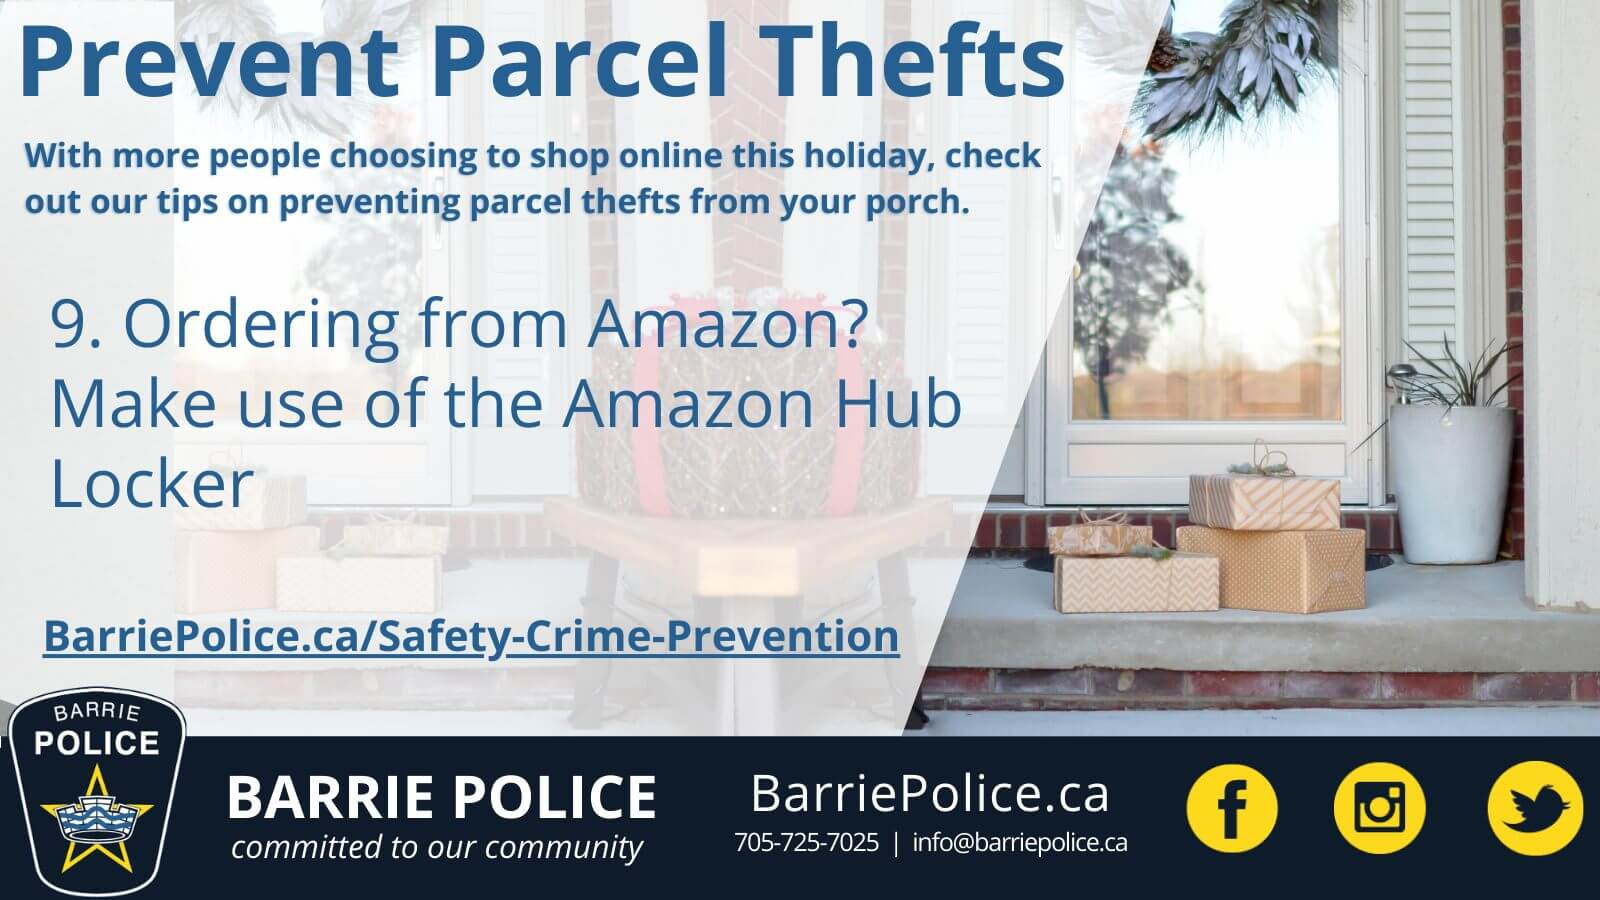 Prevent Parcel Thefts Tip 9: Use Amazon Hub Lockers